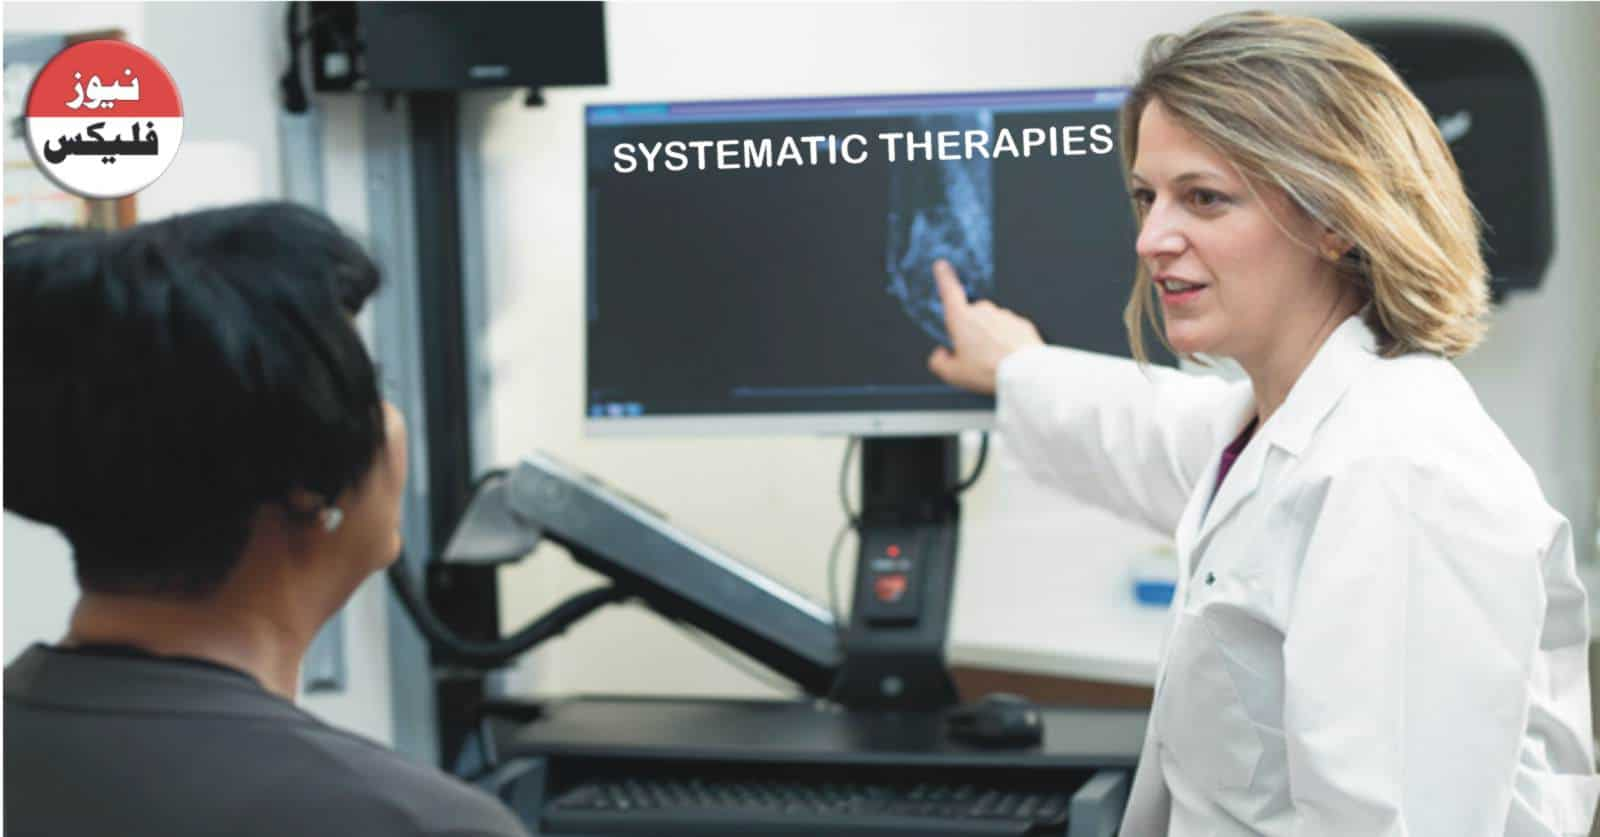 SYSTEMATIC THERAPIES